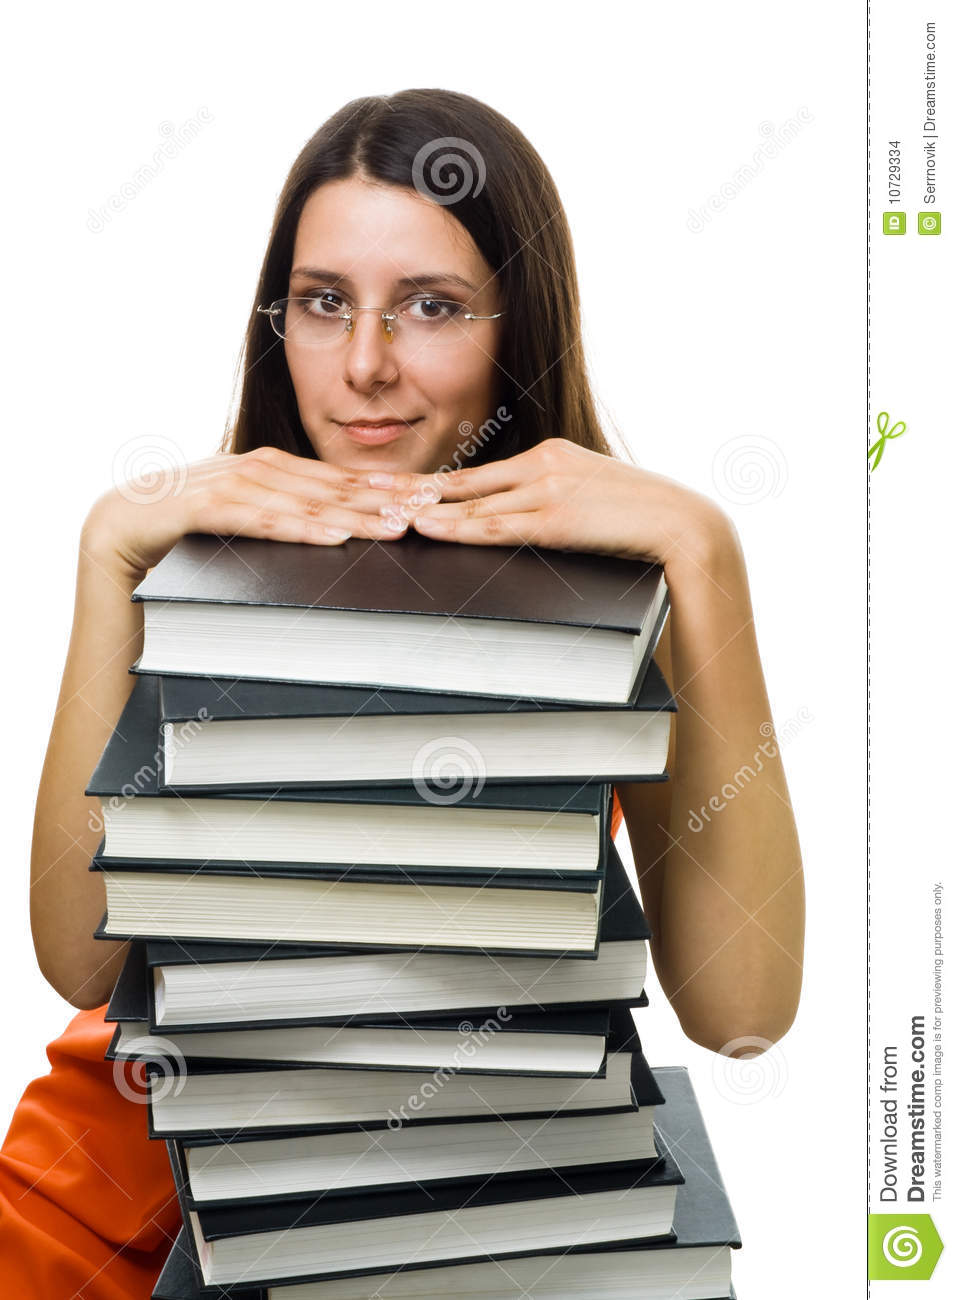 Clever Woman Student On Pile Of Books Stock Photo - Image ...